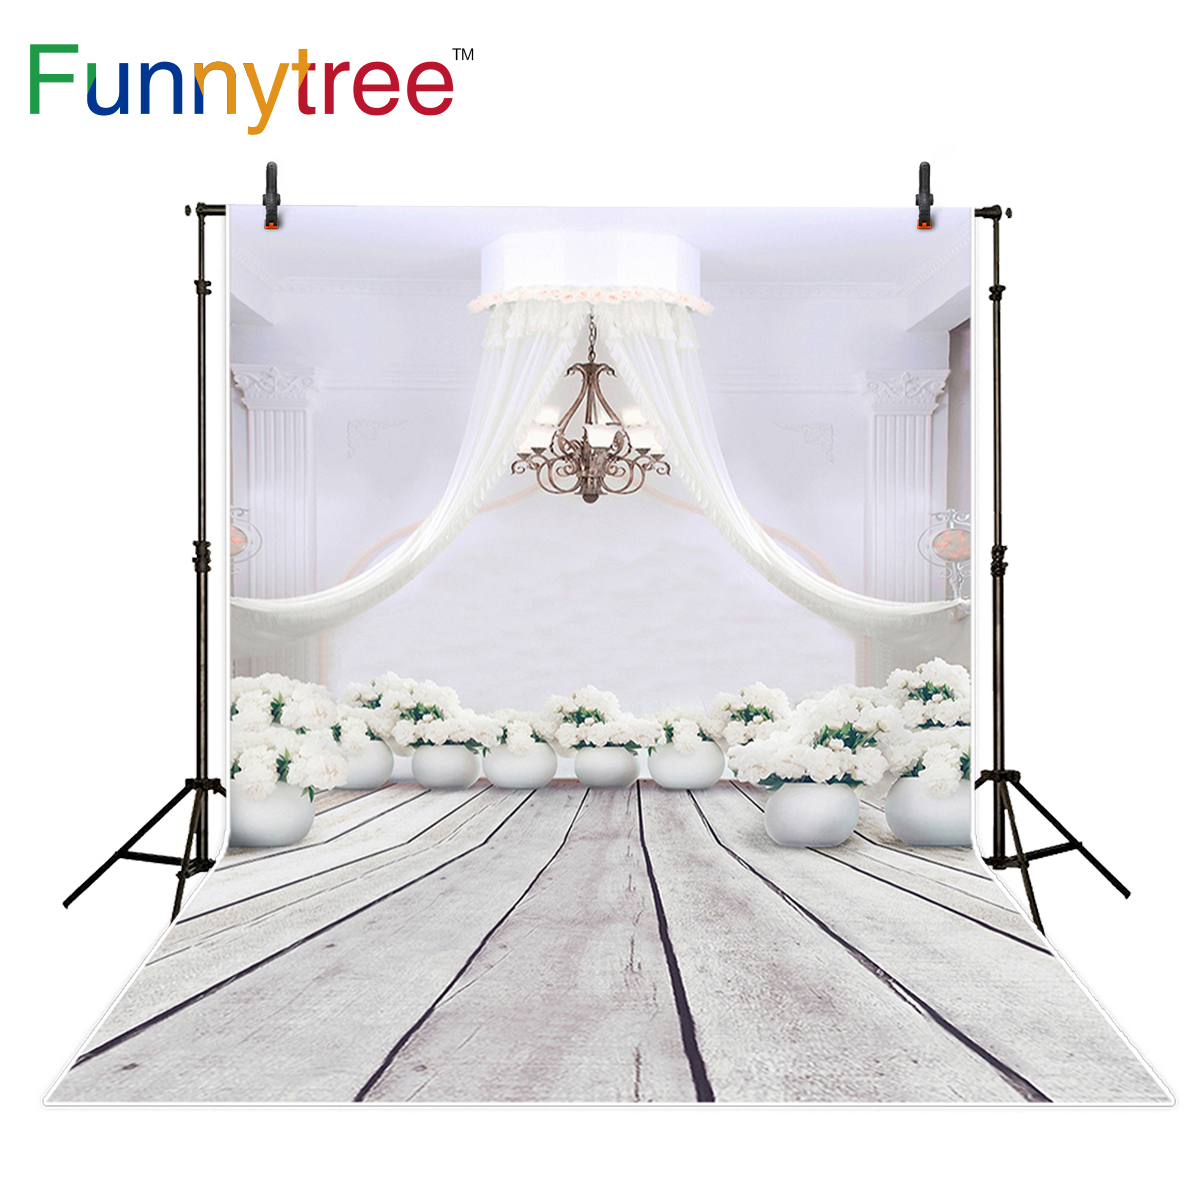 Funnytree photography backdrop white wedding flower elegant vintage wood floor background photo studio photocall 5x7ft white backdrop board photo background photography white studio cloth flower rattan corridor